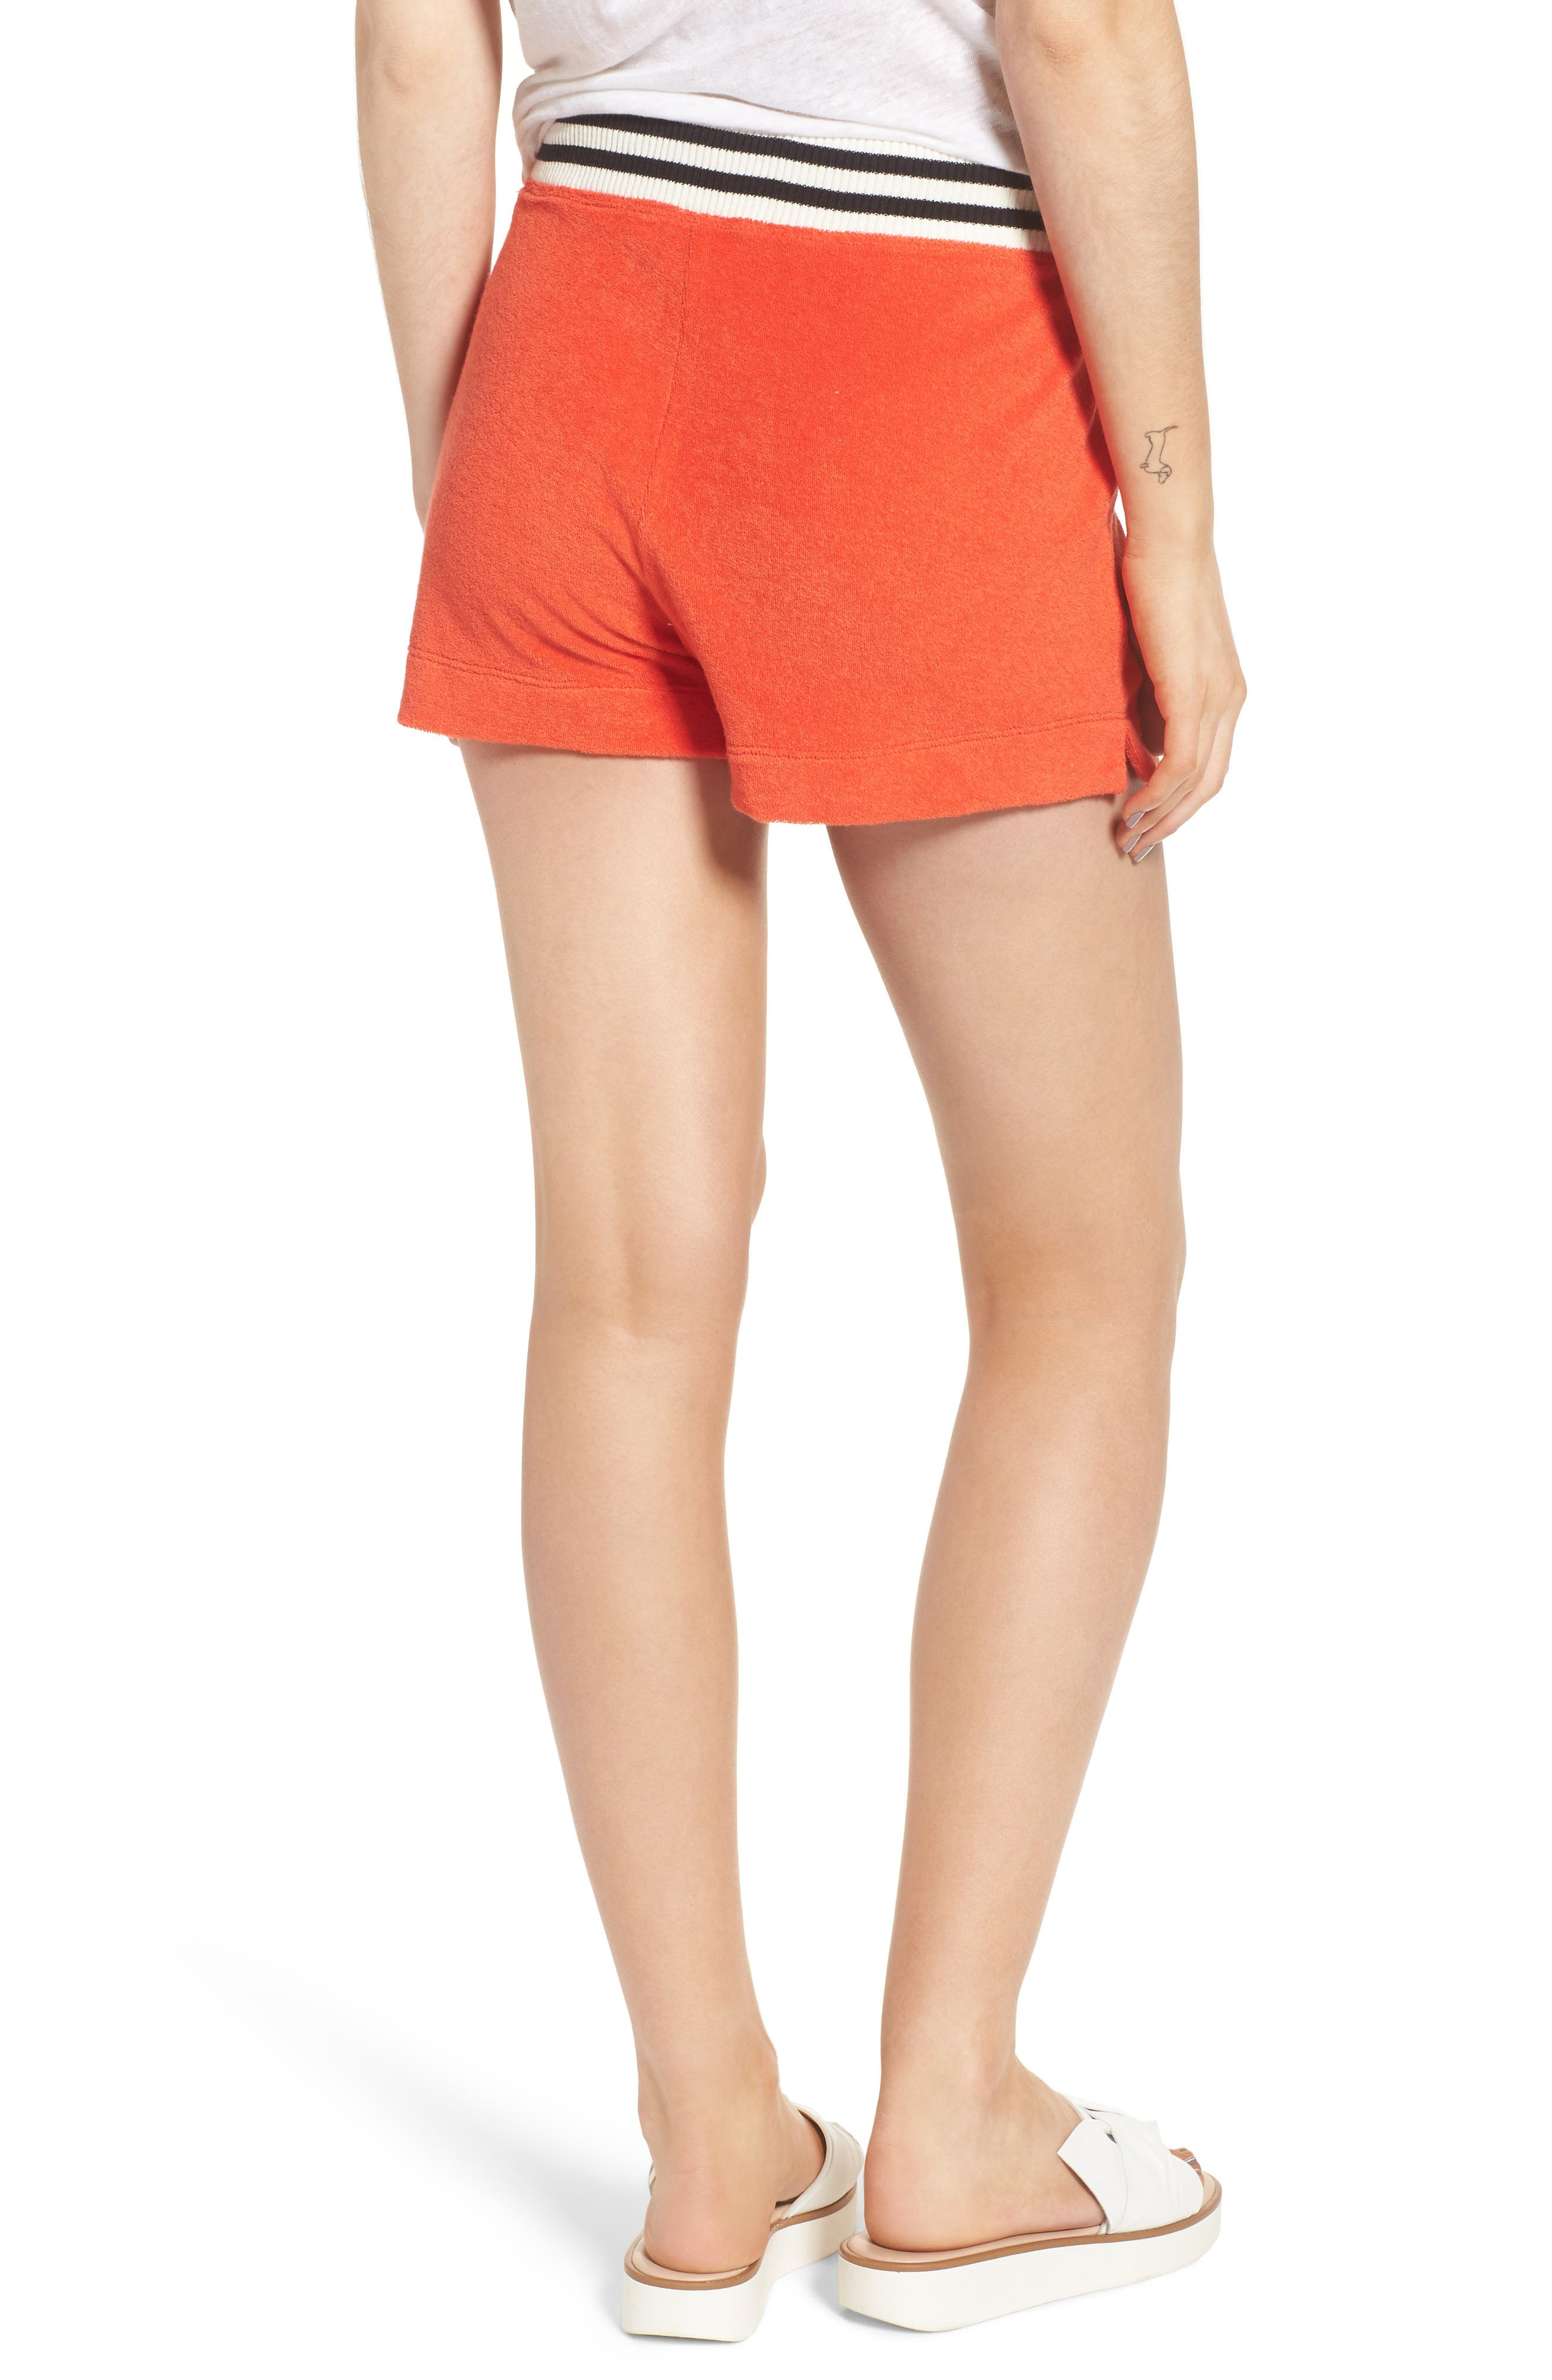 x Margherita Sportivo French Terry Shorts,                             Alternate thumbnail 2, color,                             Red